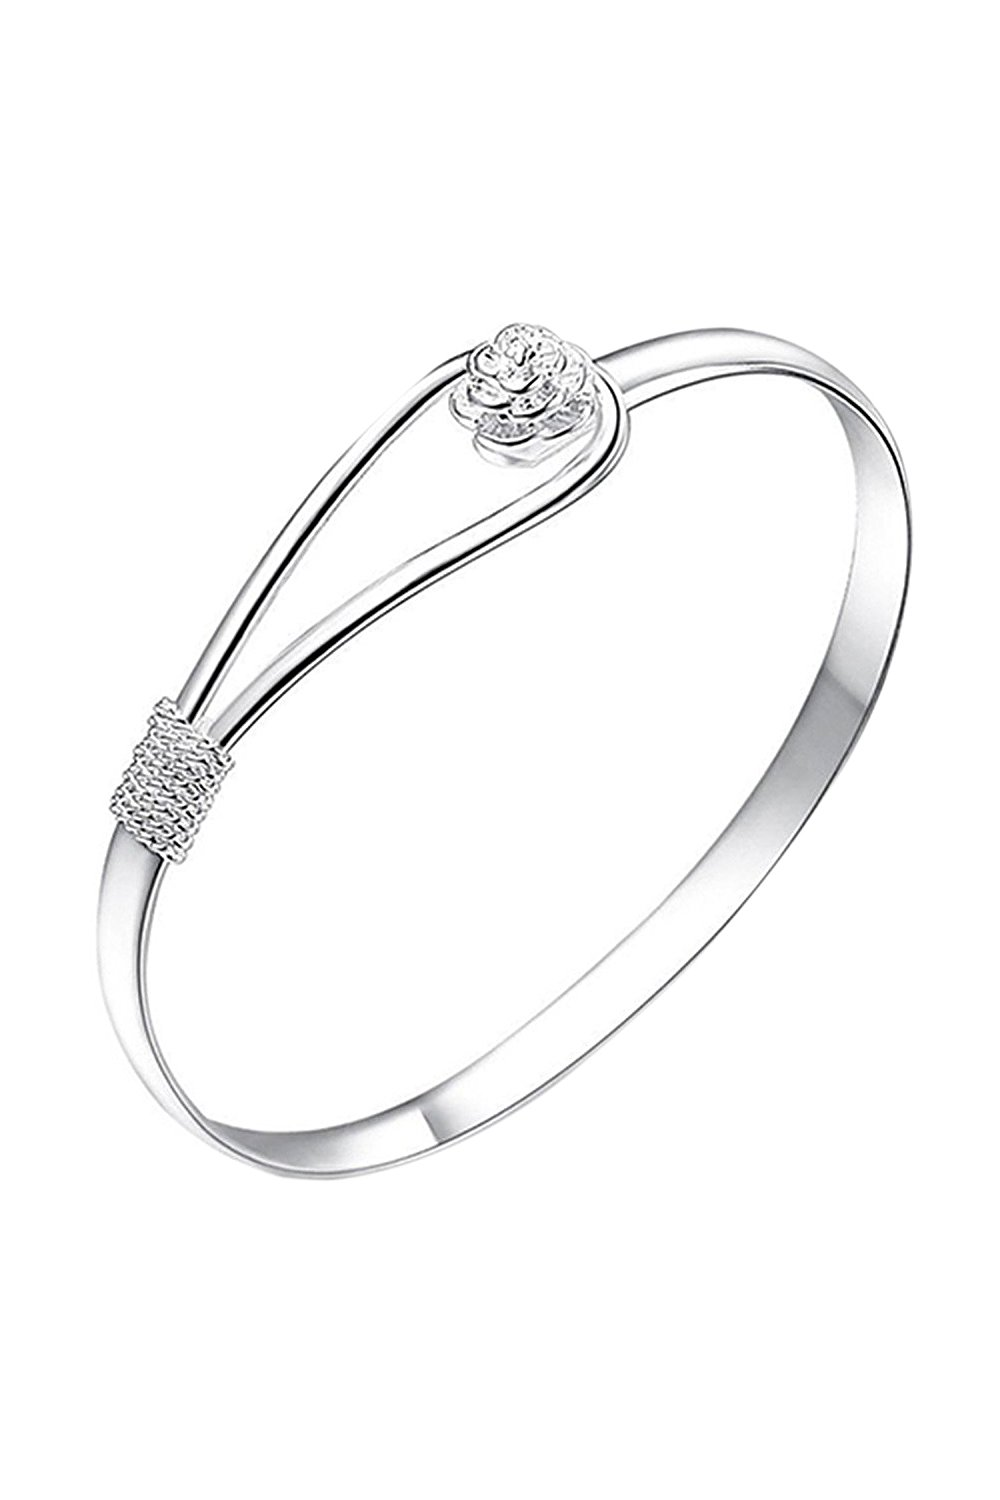 SODIAL(R) Fashion Jewelry Silver Plated Simple Circle Flower Rose Cuff Bangle Bracelet